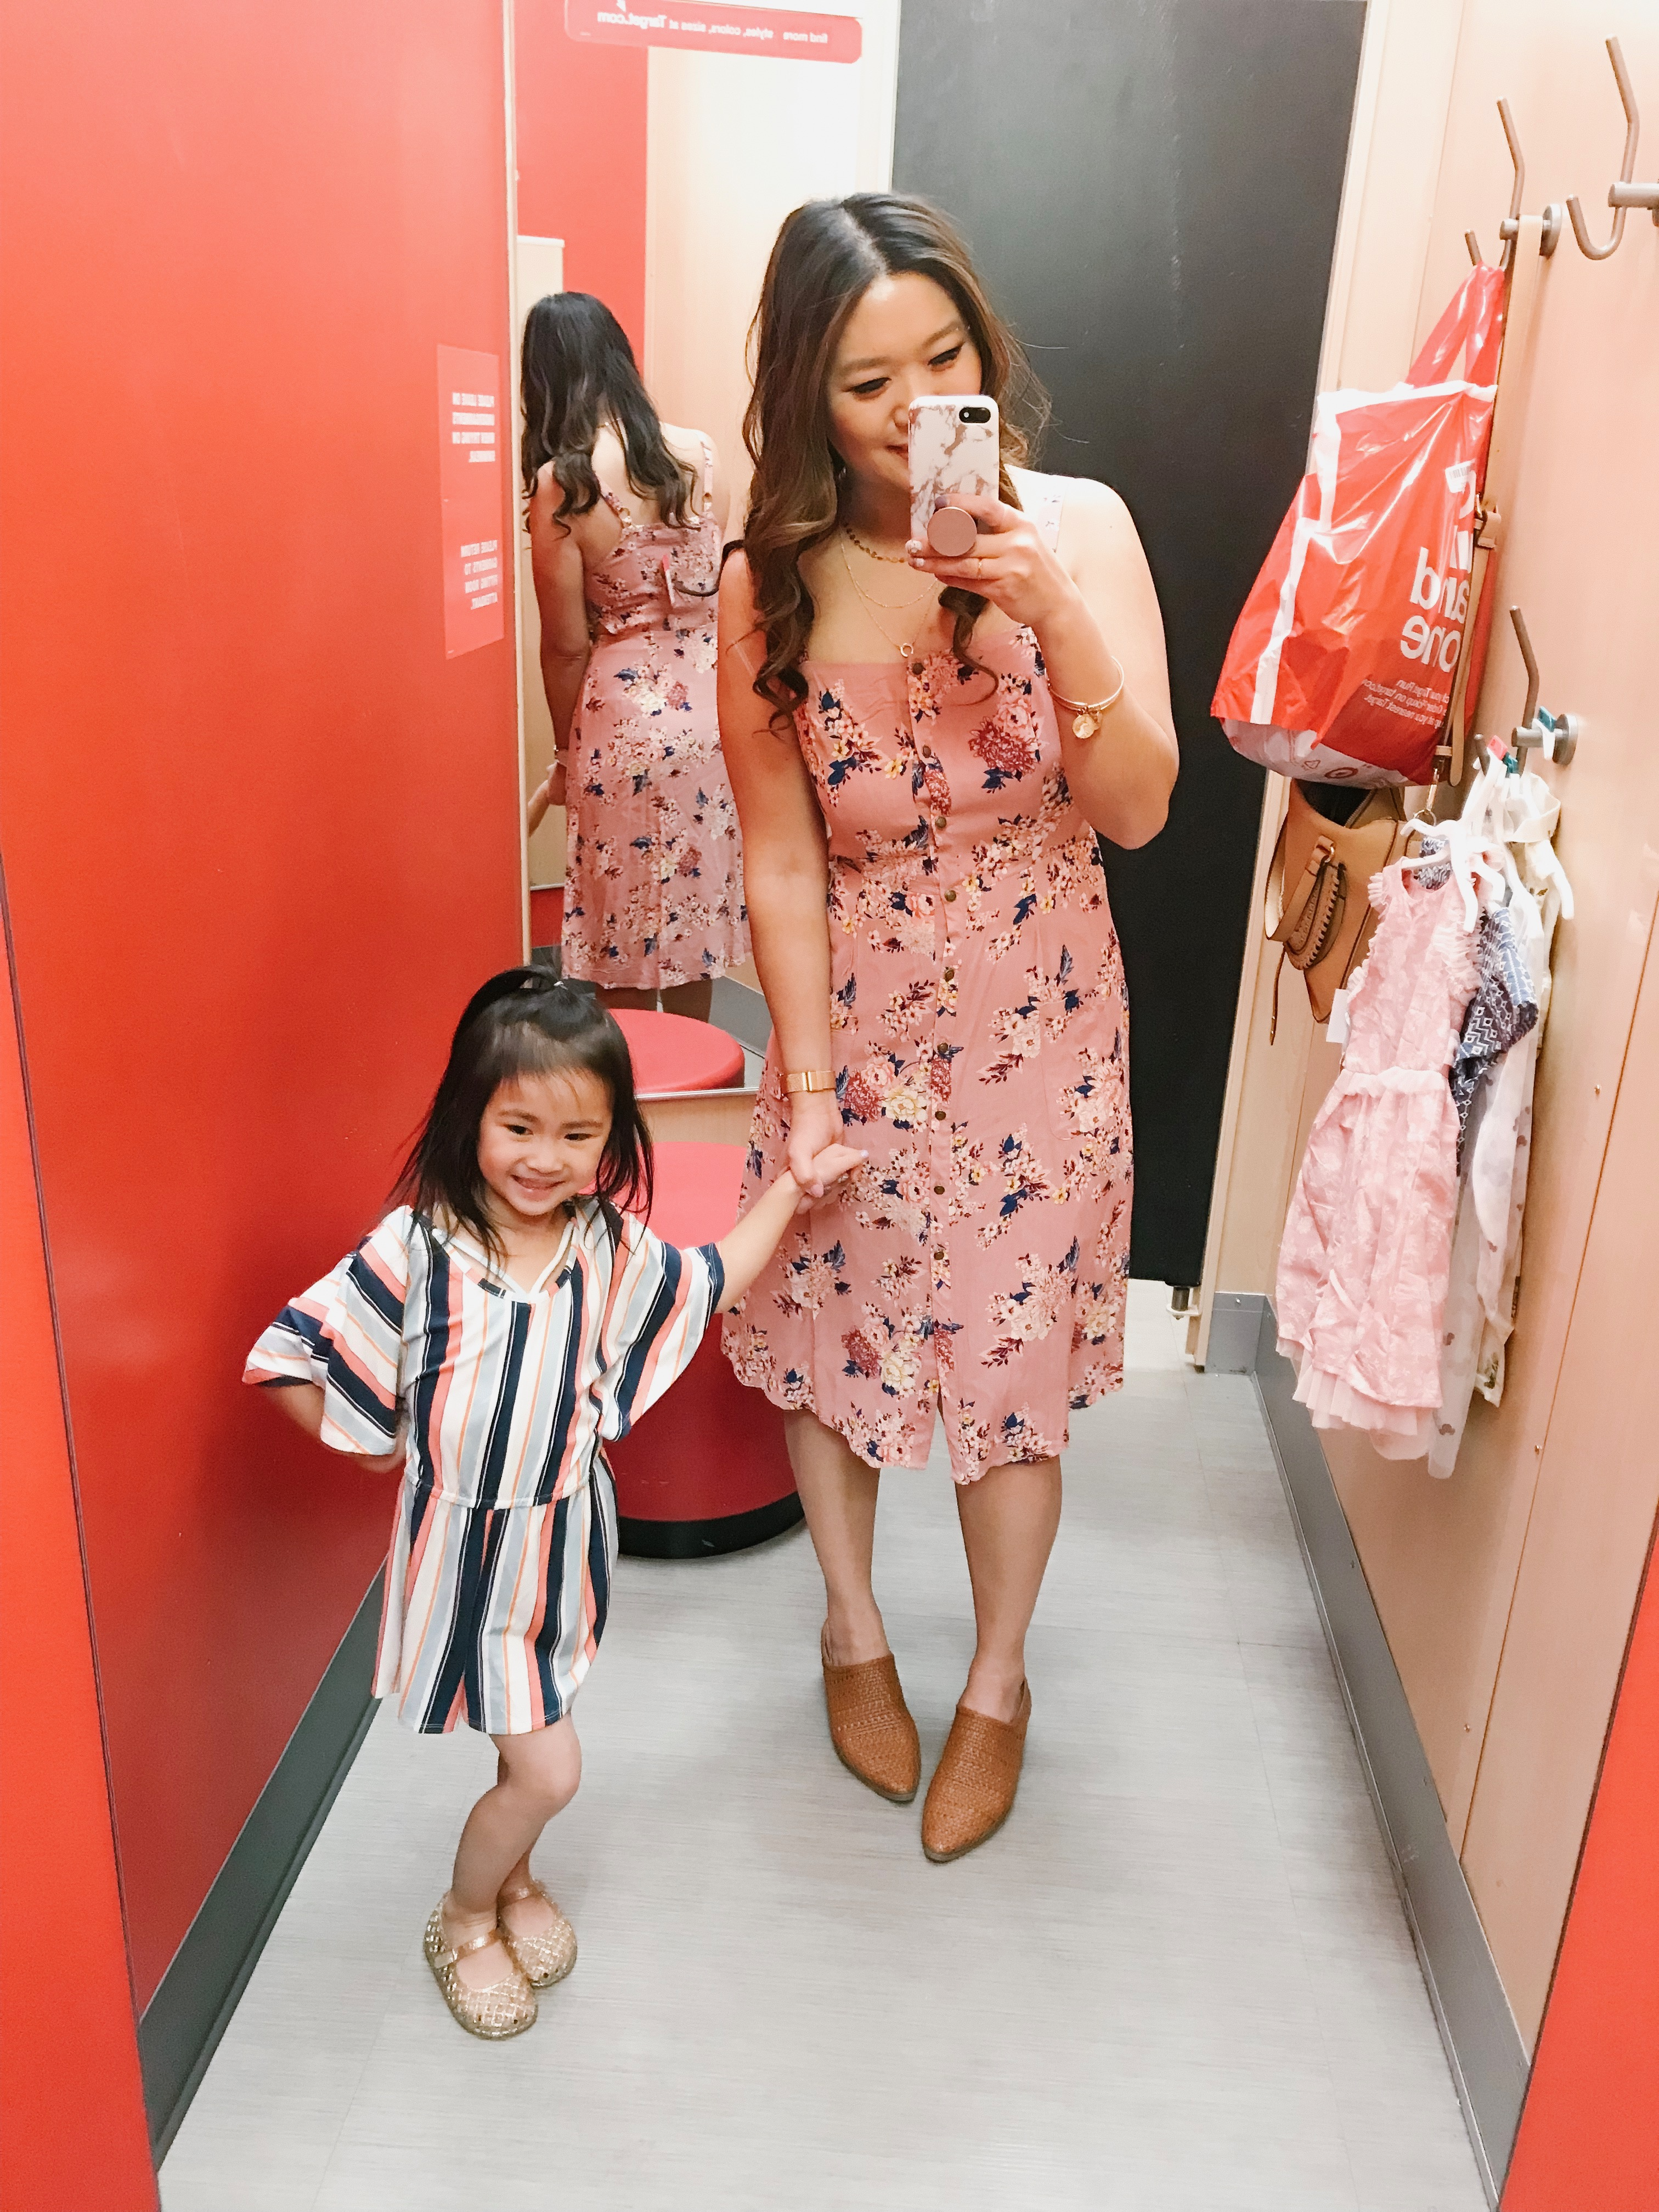 a49c618d79 Vivian s Striped Romper (XS)    Vivian s Jelly Sandals (9)    Pink Dress  (S)    Mules (Size up half a size)